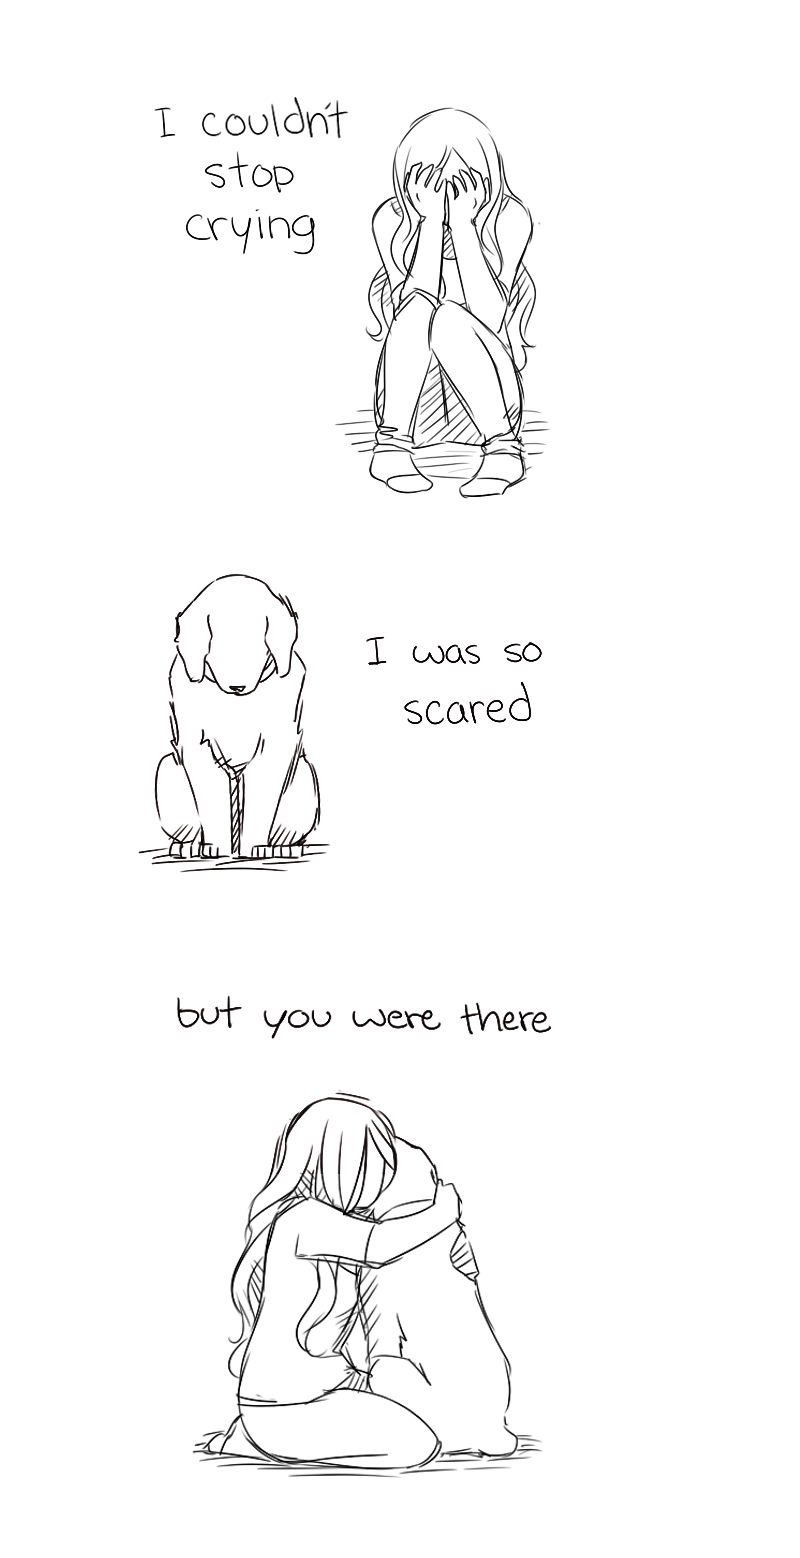 Line art - I couldnt stop crying 1 was SO scared but you were there